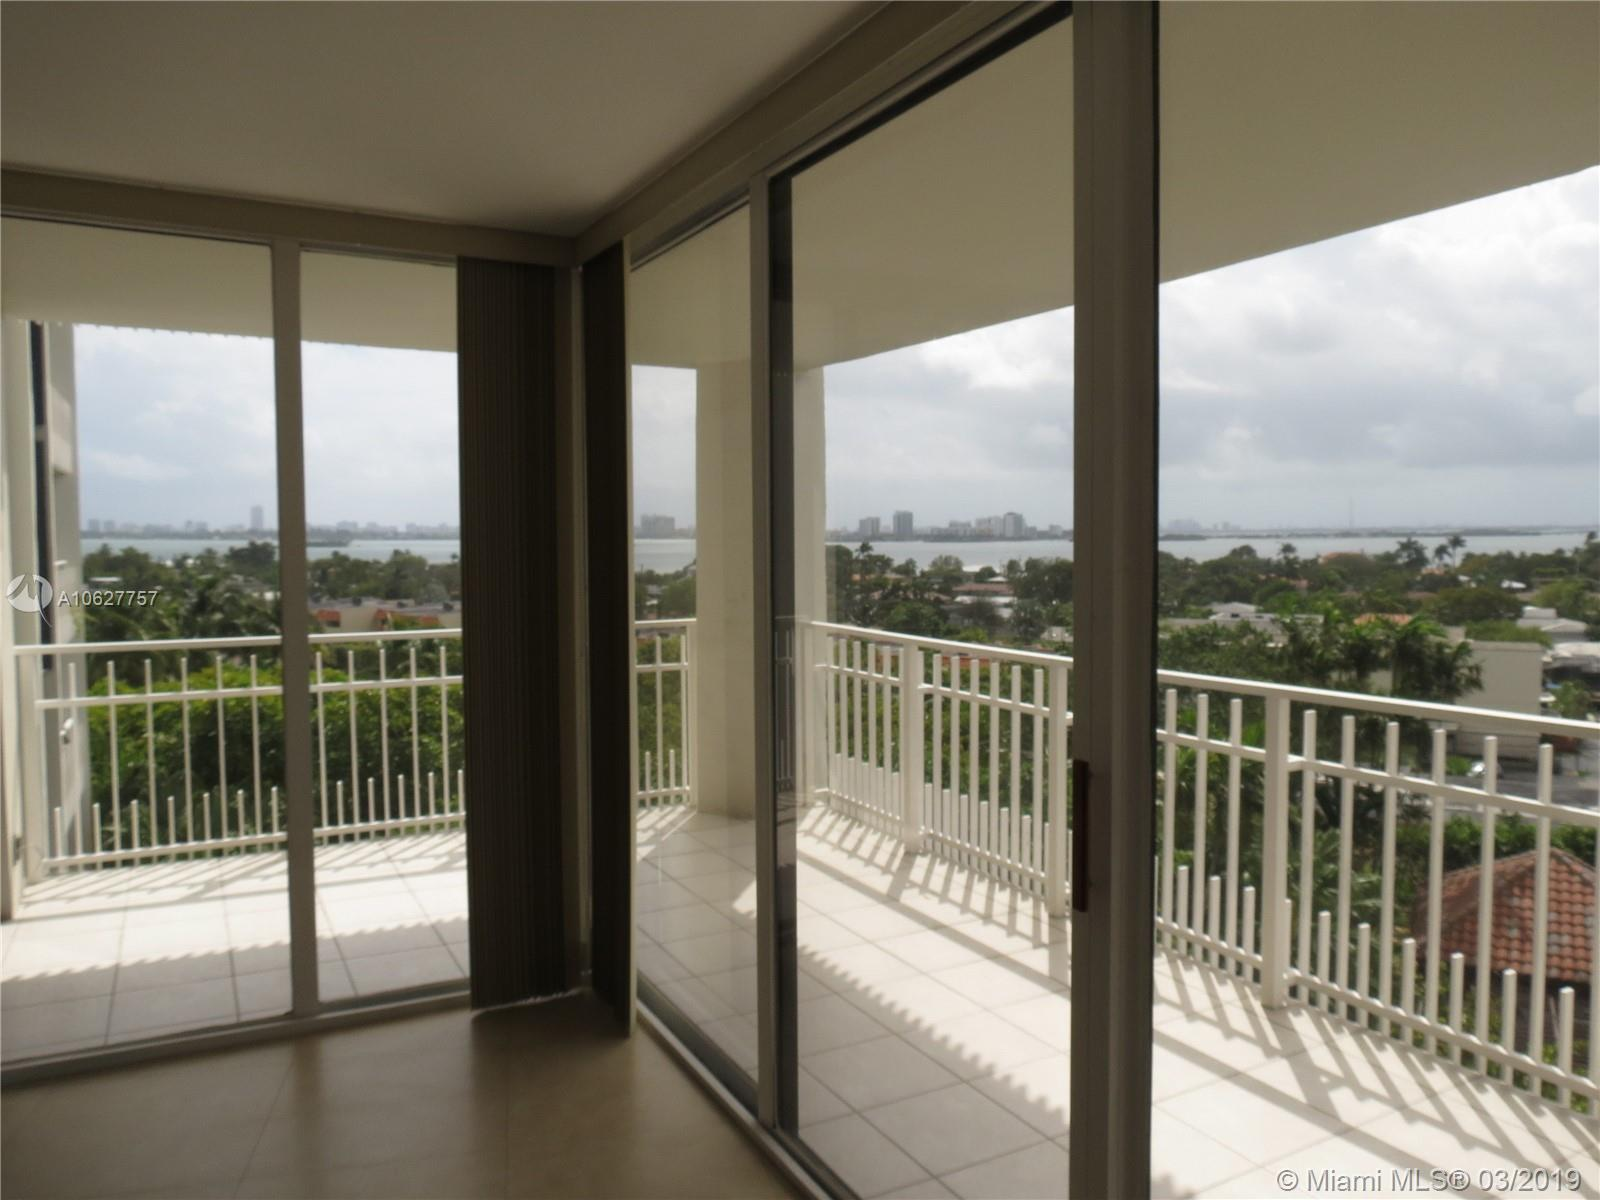 2000 Towerside Ter, 810 - Miami, Florida